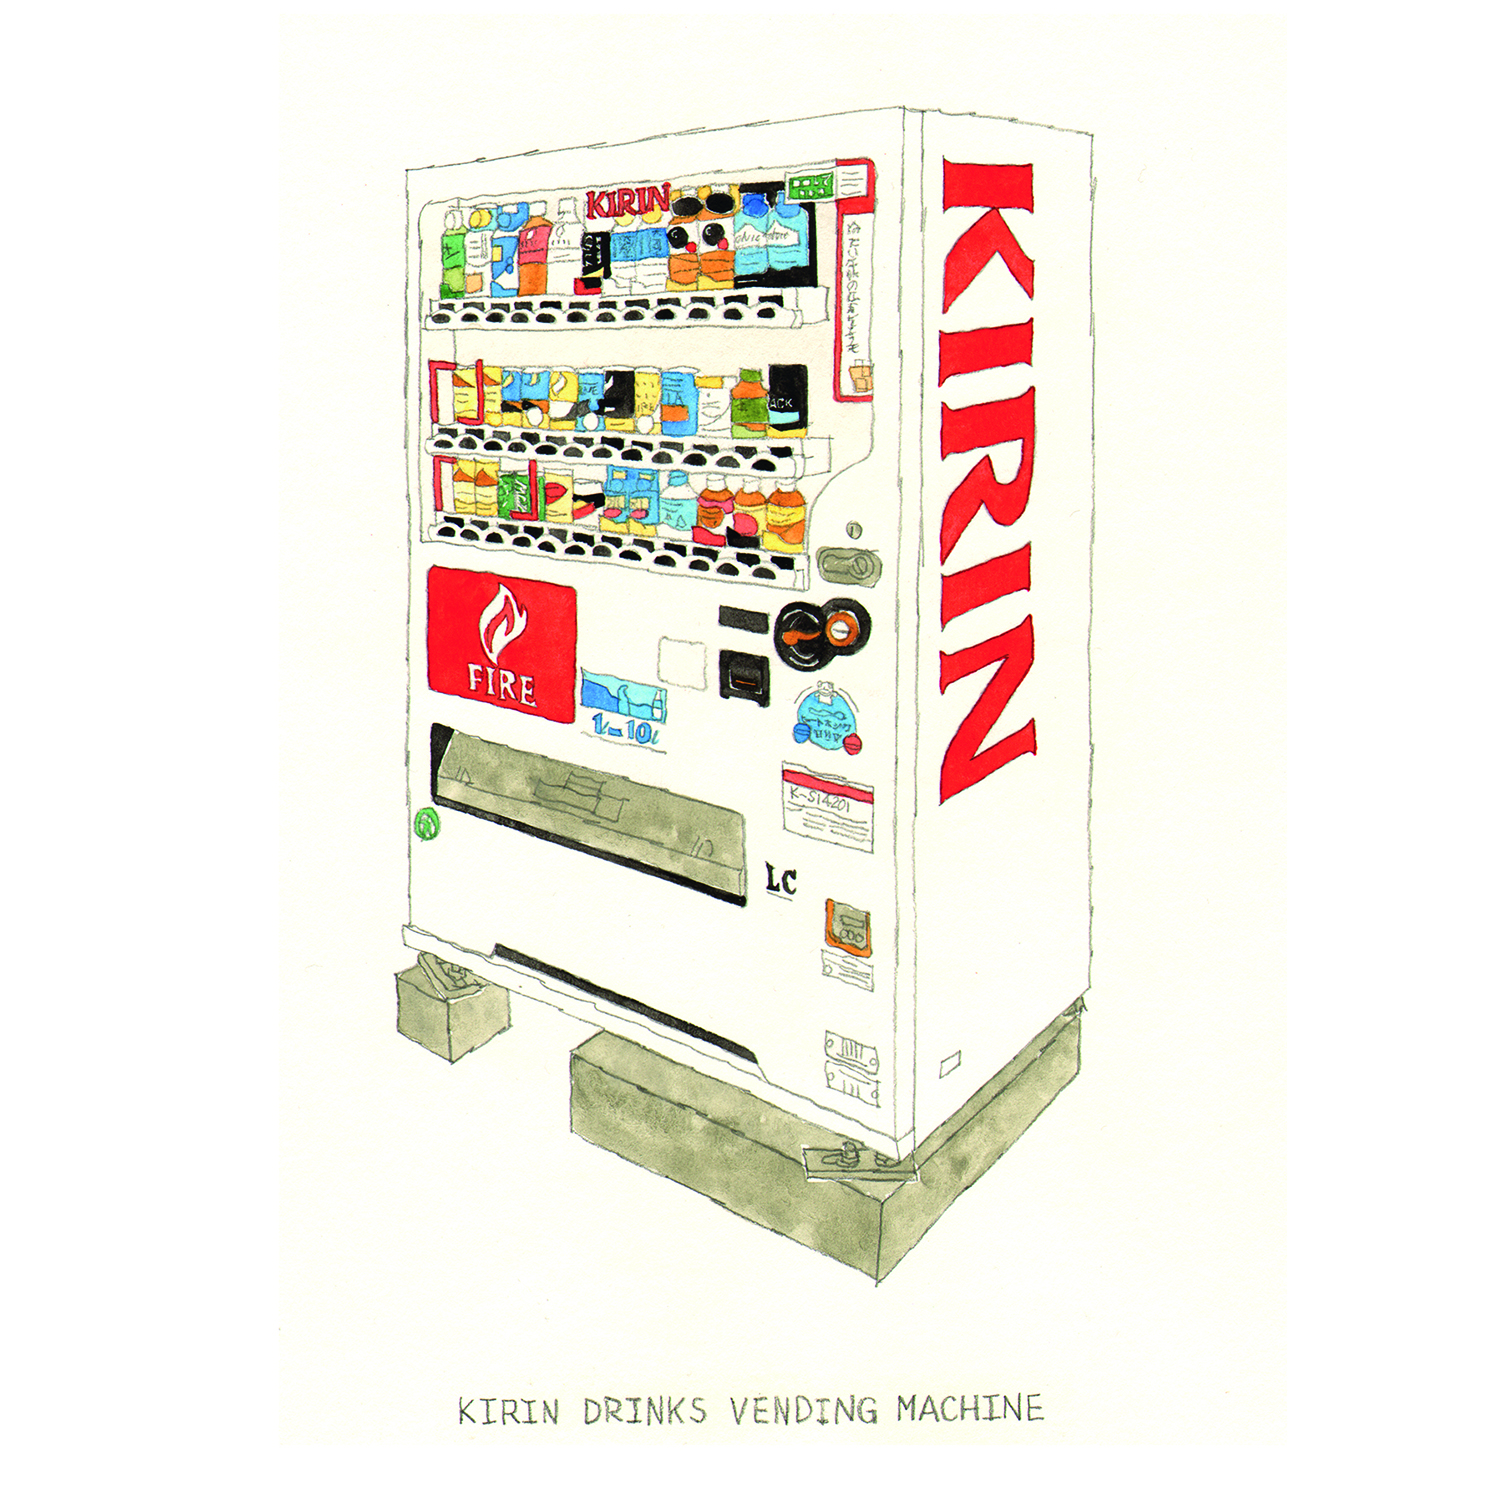 kirin vending machine drawing